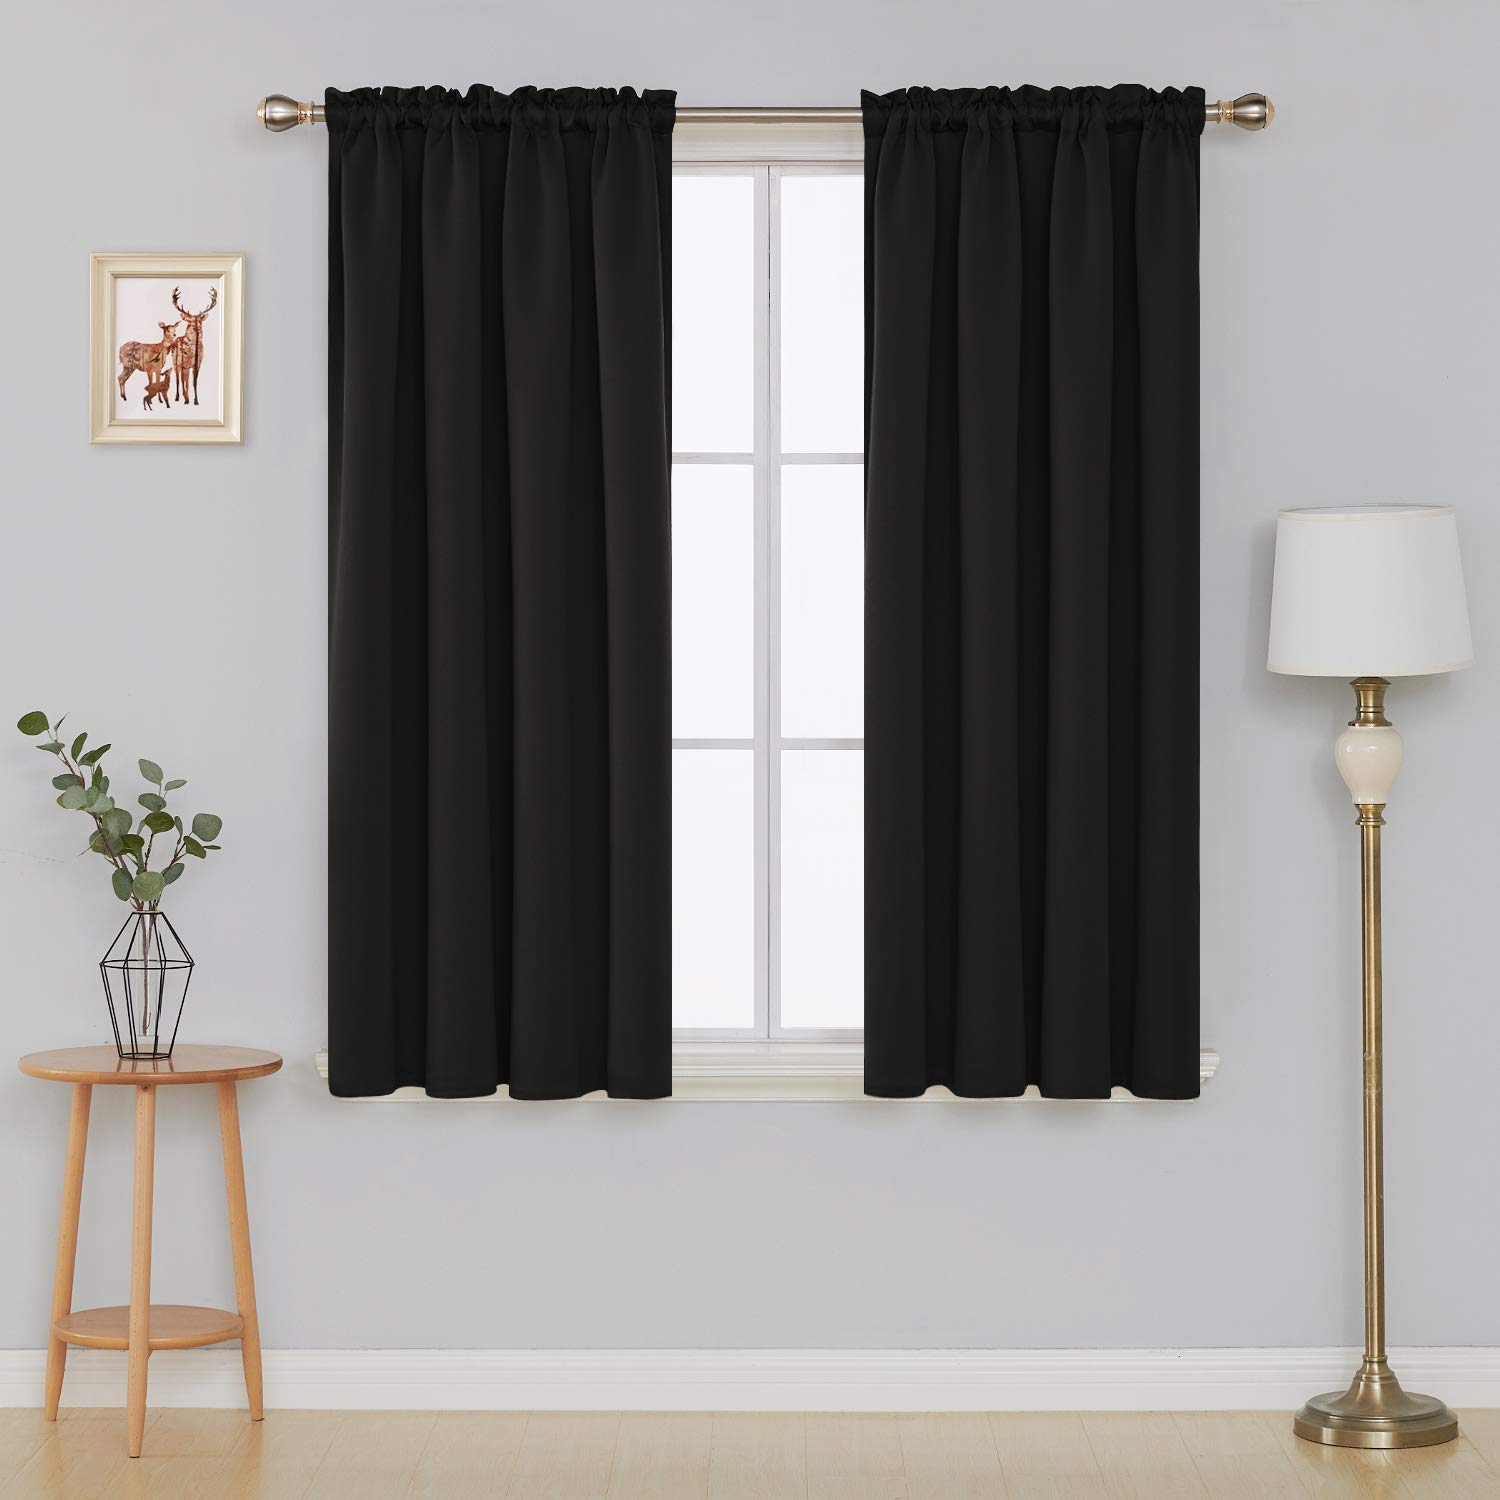 Amazoncom Deconovo Blackout Curtains Rod Pocket Curtains Room